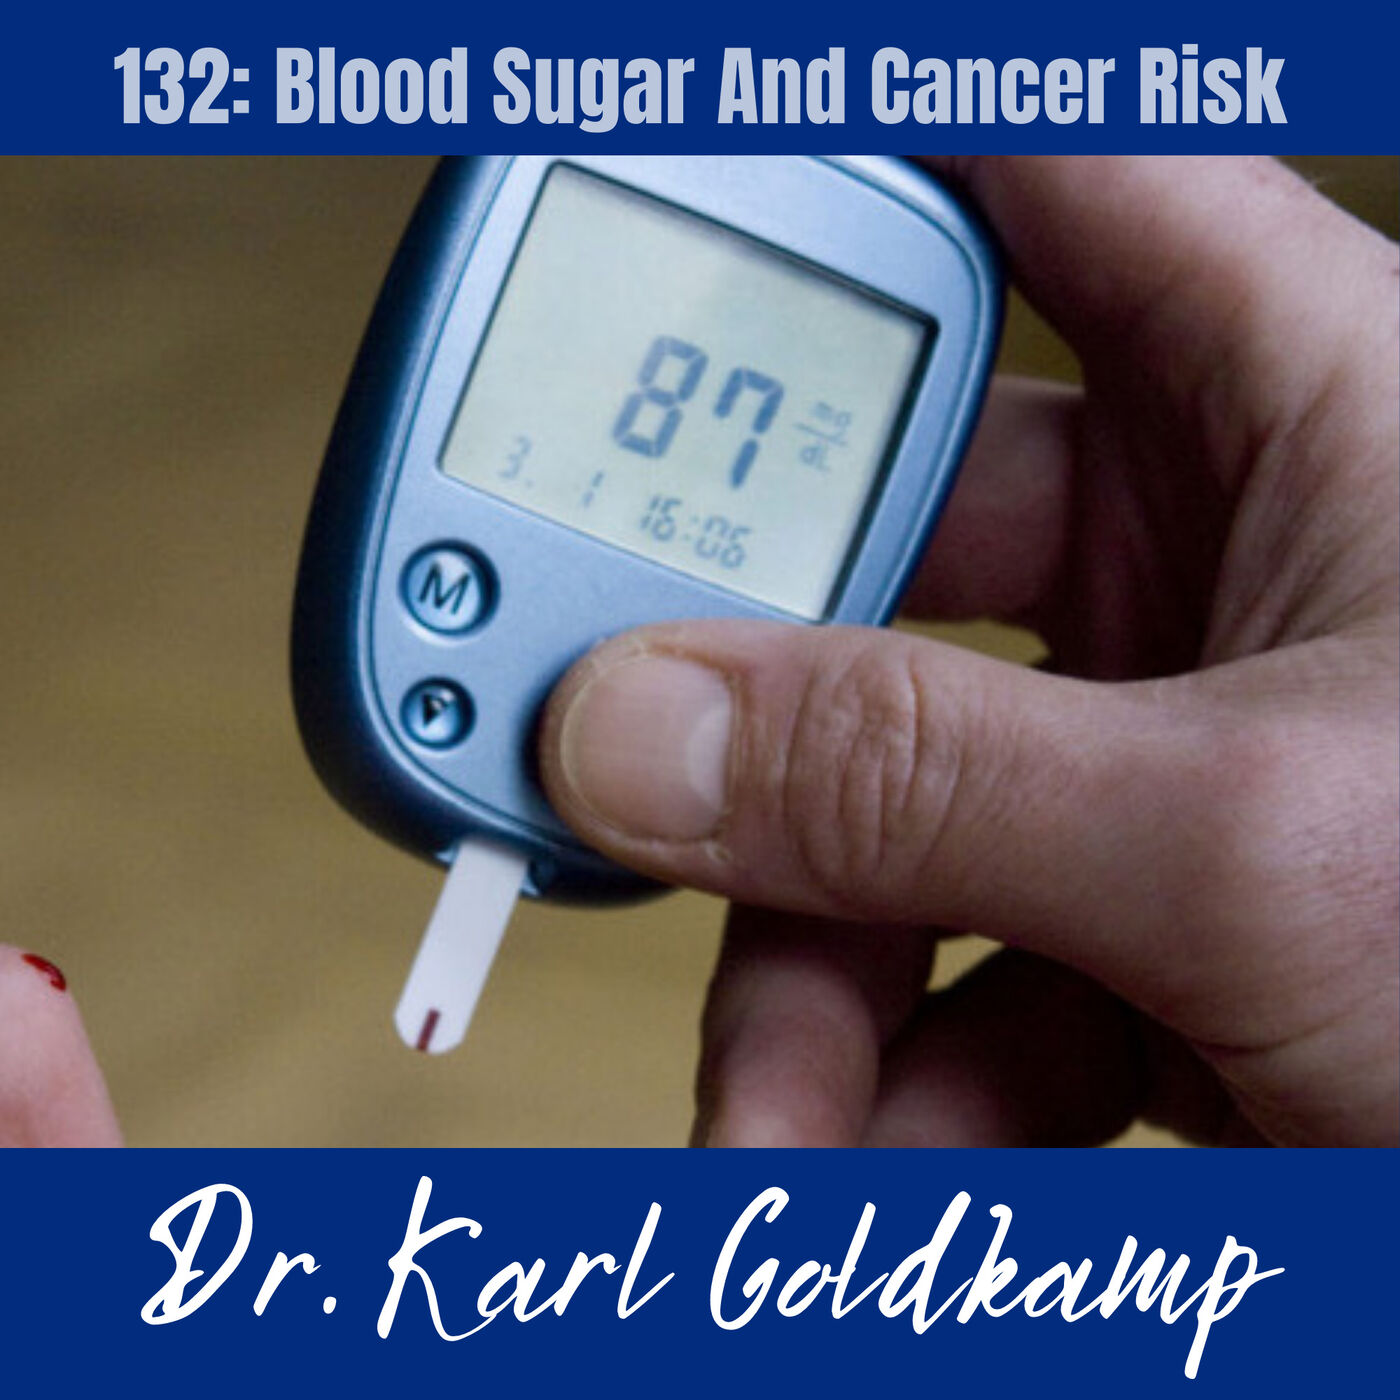 132: Blood Sugar And Cancer Risk